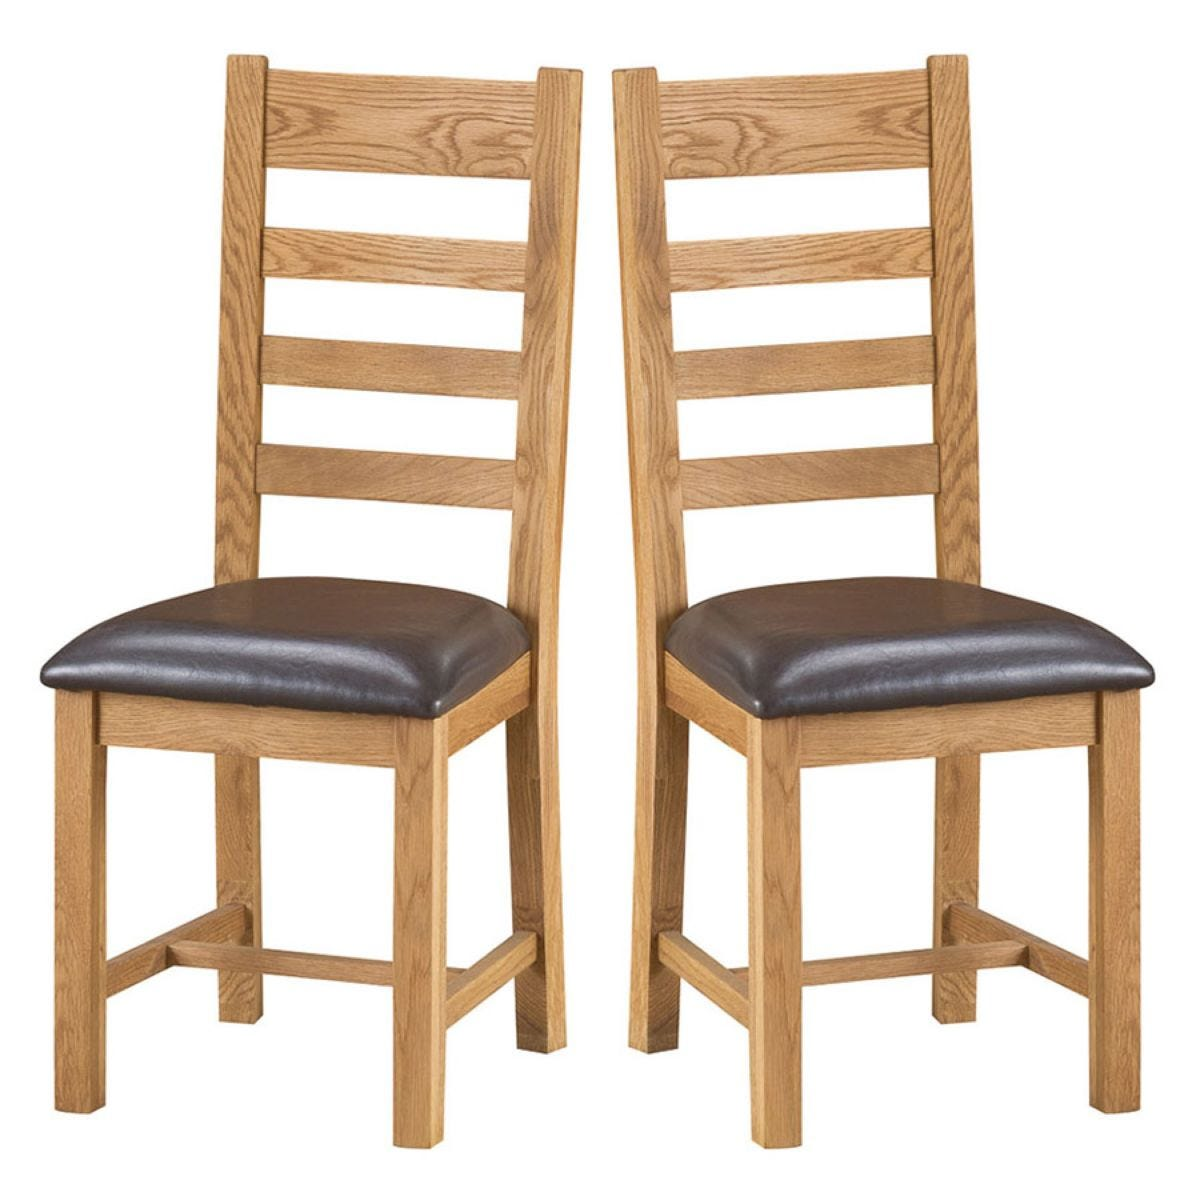 Stockbridge Ready Assembled Pair of Ladder Back Oak Chairs with Padded Seats